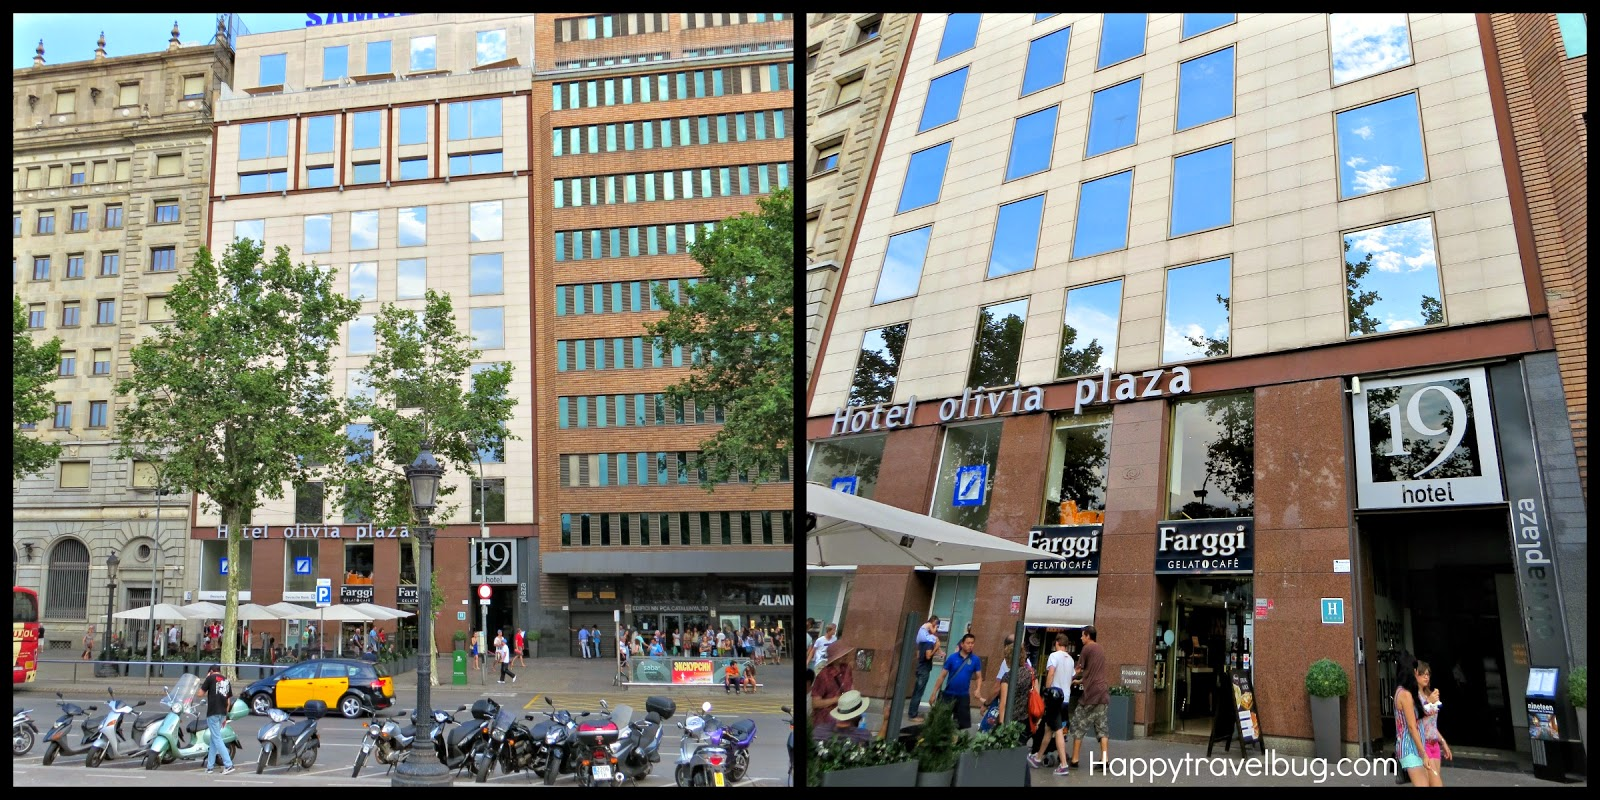 The happy travel bug olivia plaza hotel in barcelona spain for Hotel plaza barcelona